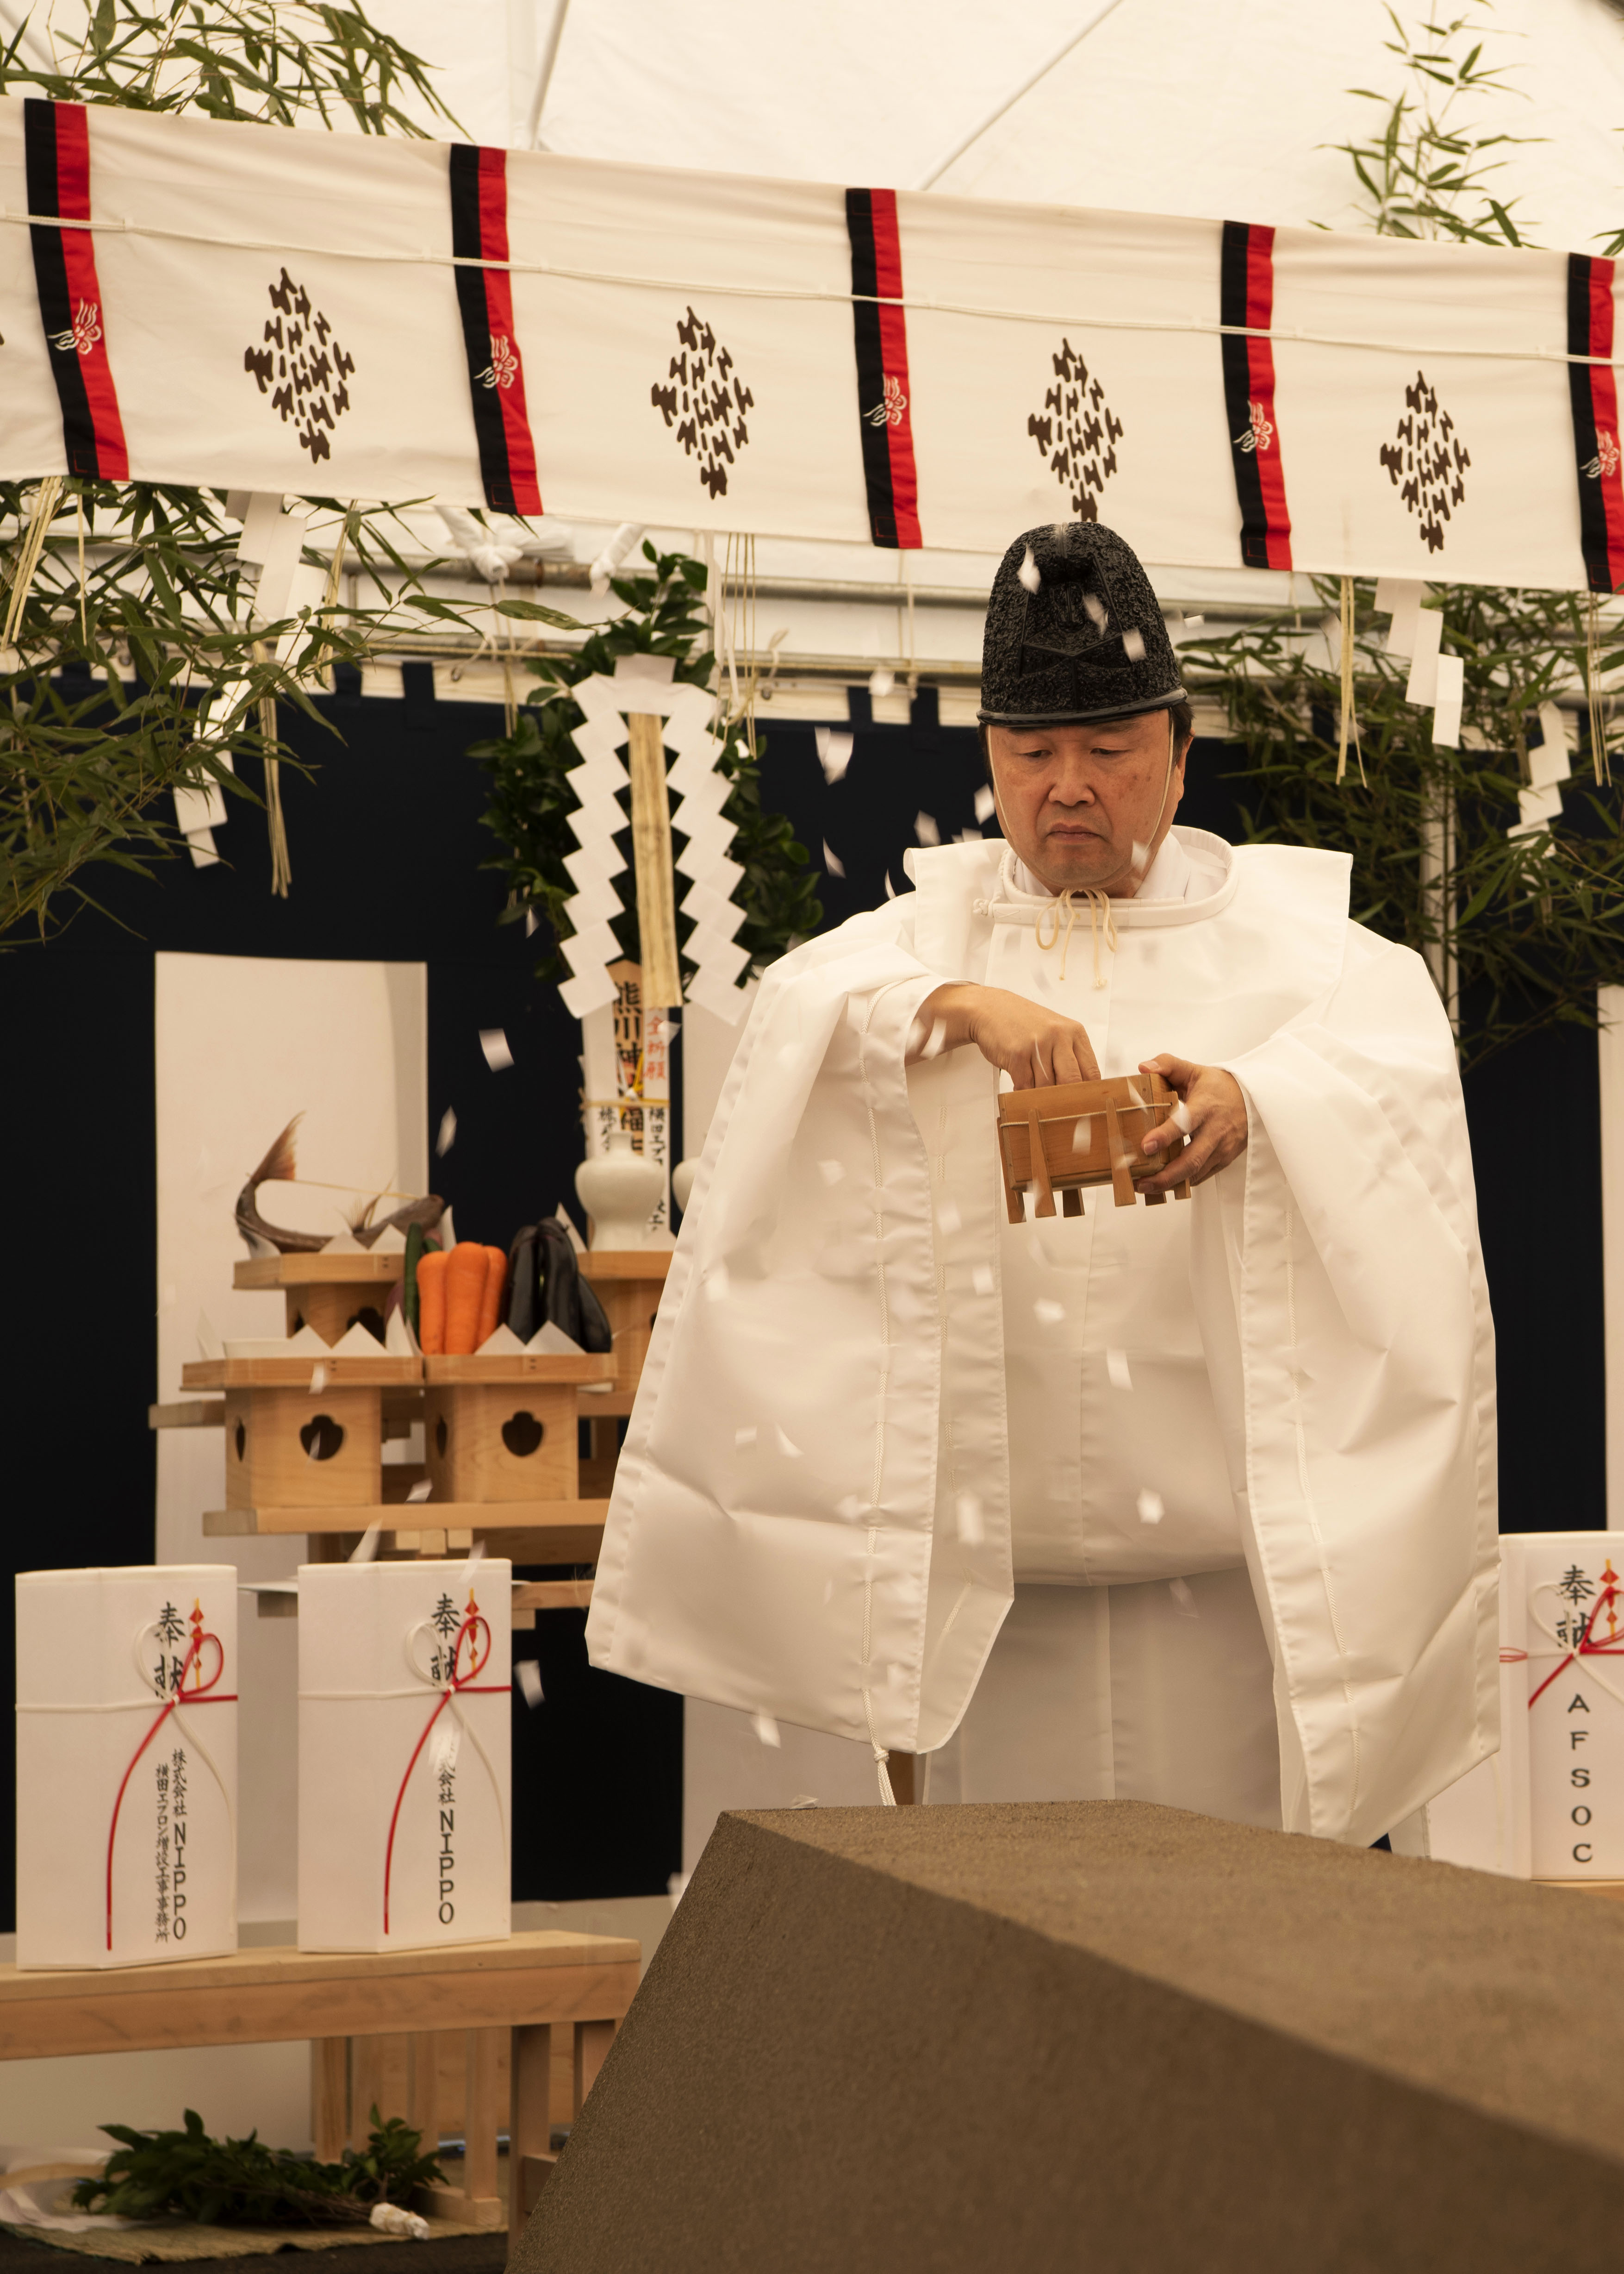 A Shinto priest performs a prayer recital to purify the land during the Air Force Special Operations Command airfield apron ground breaking ceremony held at Yokota Air Base, Japan, Dec. 5, 2019. The prayers and offerings are part of a traditional Shinto tradition to purify the site and wish safety on the construction crew. (Staff Sgt. Taylor Workman/Air Force)